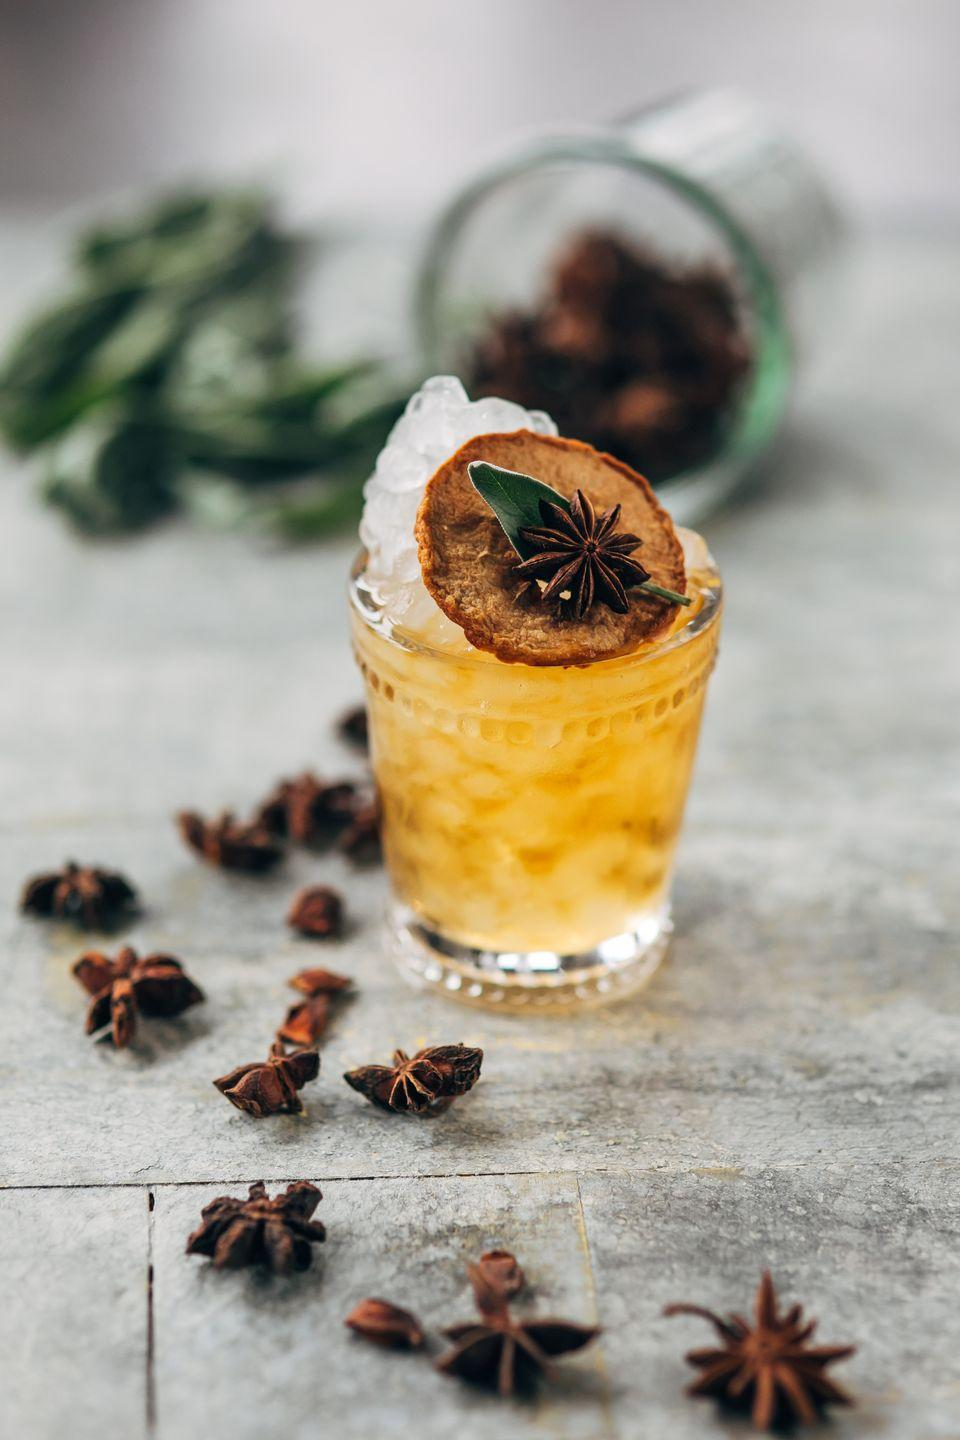 """<p>This unique combination of apple cider, carrot juice and absinthe is the perfect starter for an autumn dinner party.</p><p><strong>Ingredients:</strong><br></p><p>1 .25 oz. <a href=""""https://drizly.com/liquor/whiskey/scotch-whisky/johnnie-walker-red-label/p5175"""" rel=""""nofollow noopener"""" target=""""_blank"""" data-ylk=""""slk:Johnnie Walker Red"""" class=""""link rapid-noclick-resp"""">Johnnie Walker Red<br></a>1 oz. Unfiltered apple cider<br>.5 oz. Fresh carrot juice<br>.5 oz. Sage/Ginger syrup<br>.2 oz. Absinthe<br>.25 oz. Apple cider vinegar<br>Crushed ice</p><p><strong>Directions:</strong></p><p>Build all ingredients into a rocks glass over ice.</p>"""